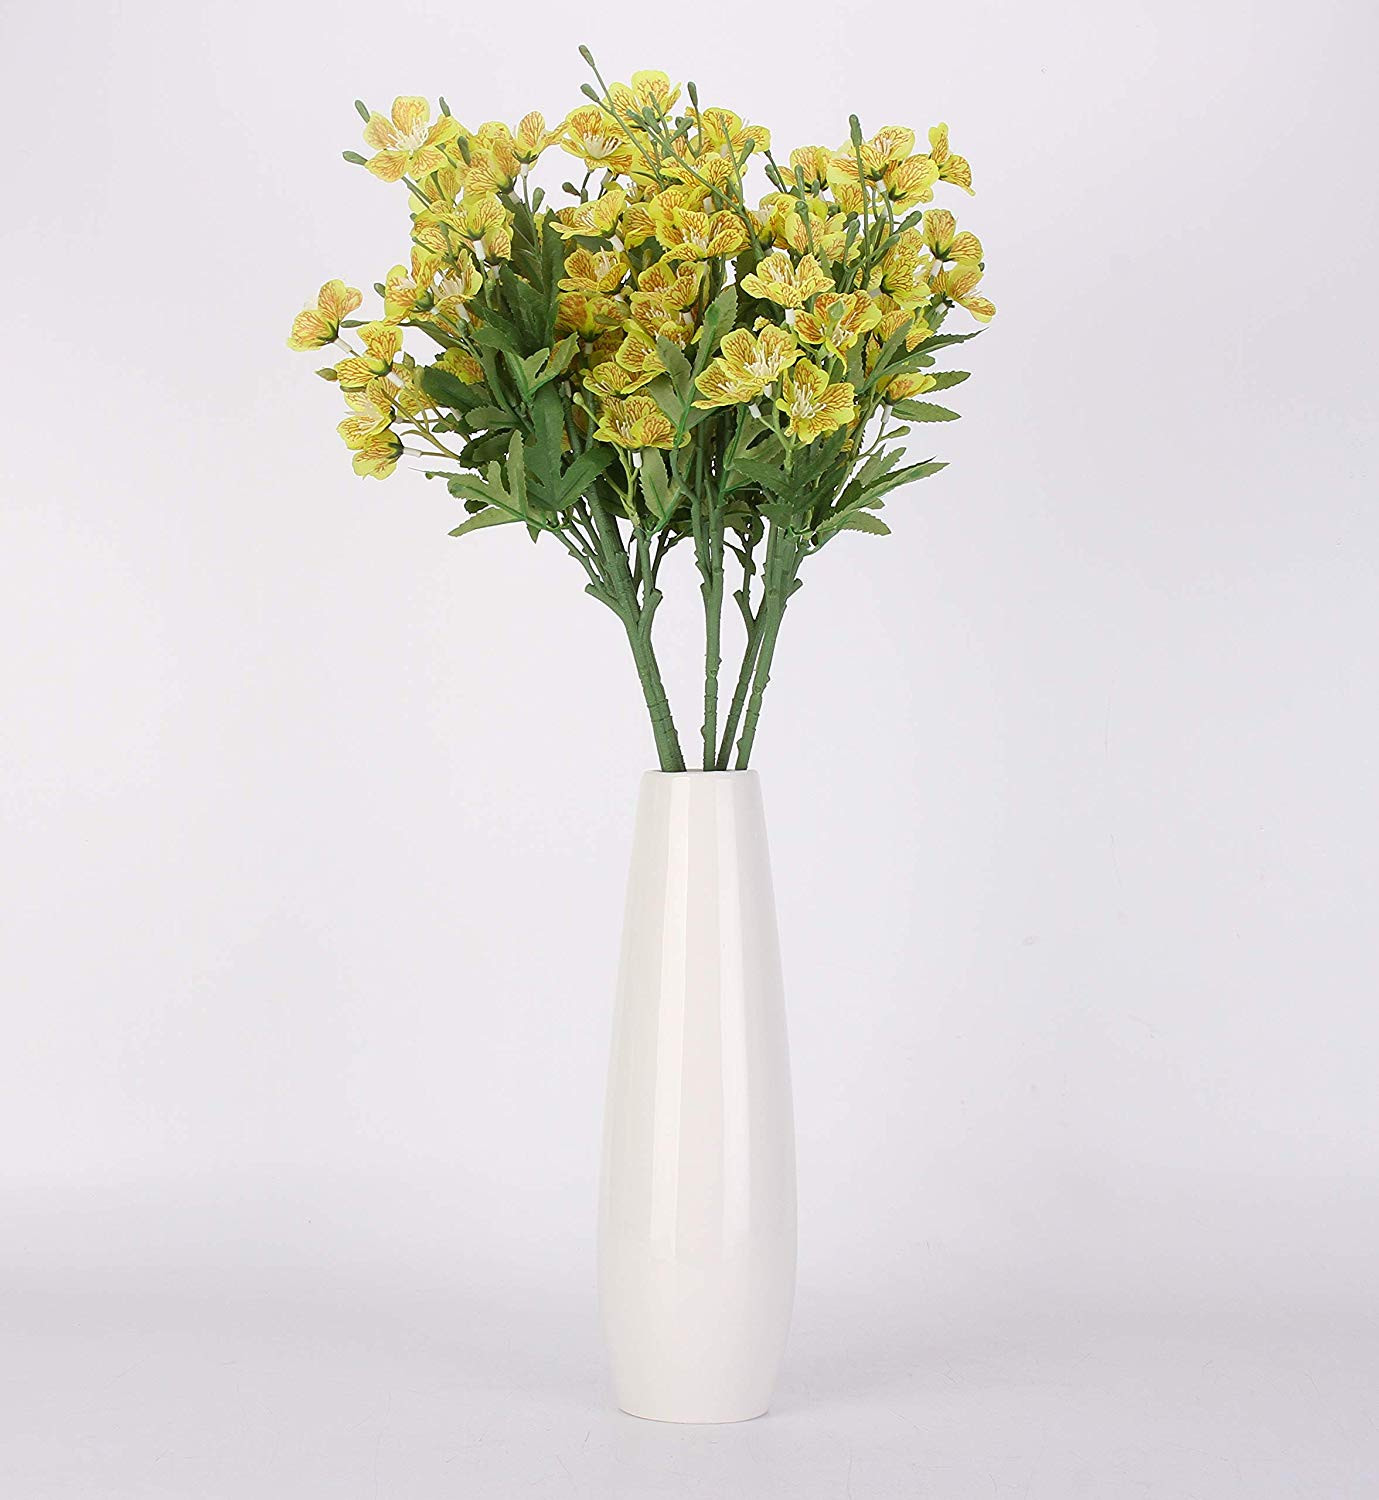 artificial flowers in vase yellow of amazon com nolast artificial flowers 25 long stem faux flower throughout amazon com nolast artificial flowers 25 long stem faux flower arrangements for tall vases home party garden office wedding decoration 5 pcs yellow home